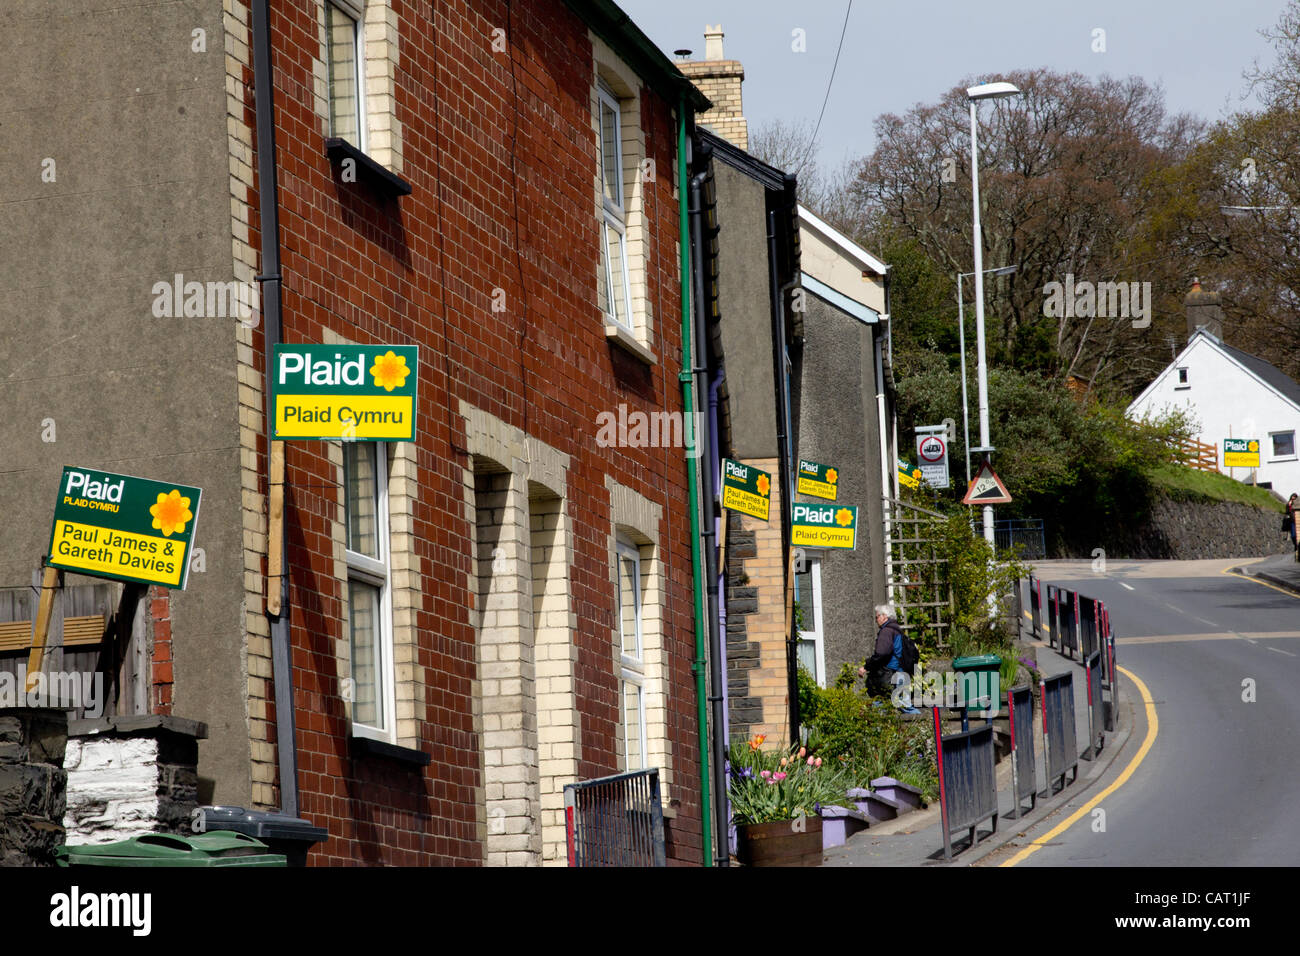 Wales, United Kingdom, April 17, 2012. Plaid Cymru (Welsh Nationalist party)  placards dominate the village of Llanbadarn - Stock Image